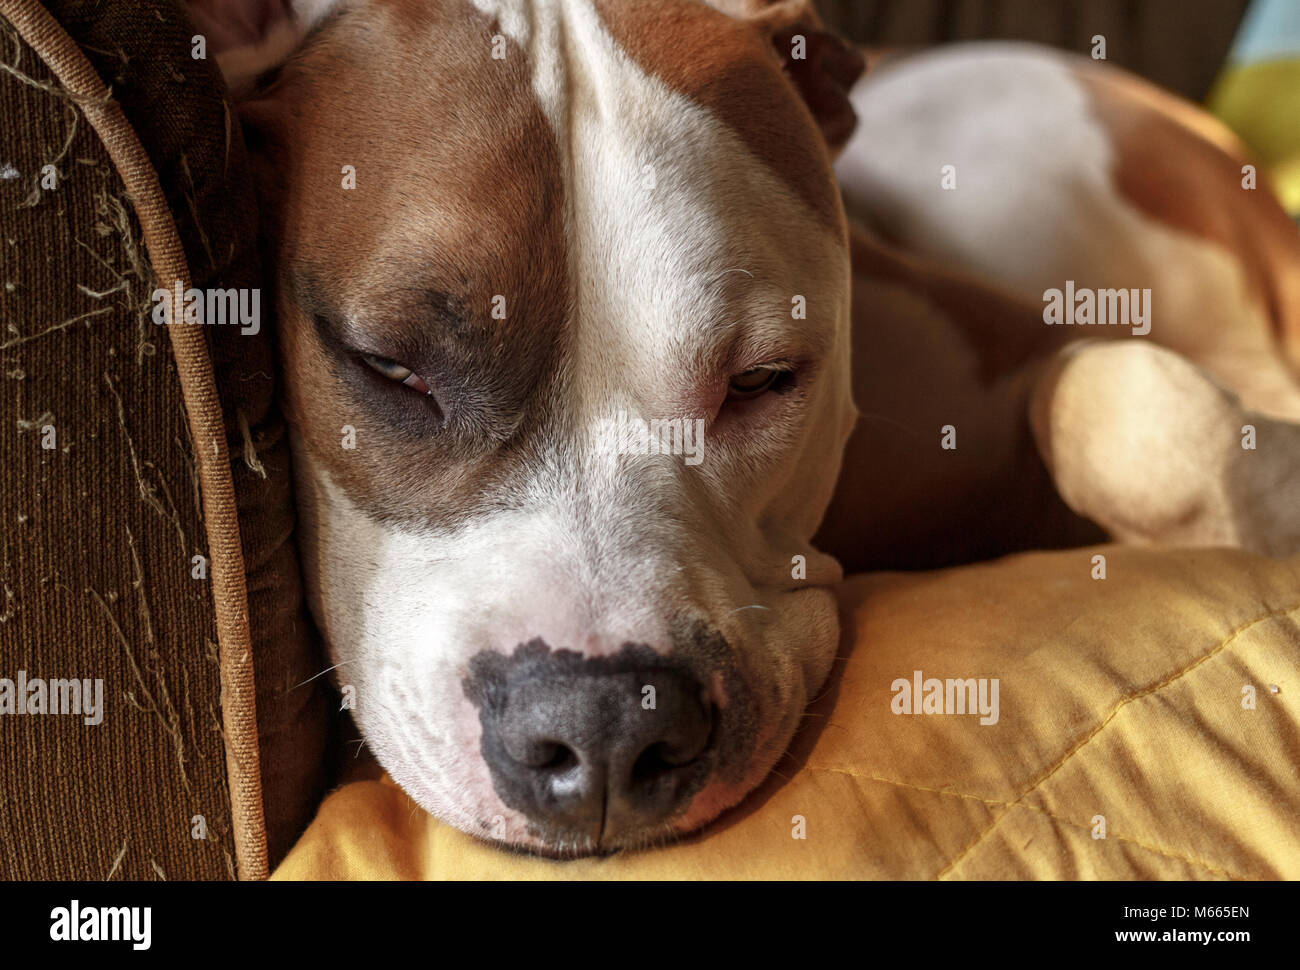 An American Pit Bull Terrier mix )Canis lupus familiaris) starts to fall asleep on a couch - Stock Image